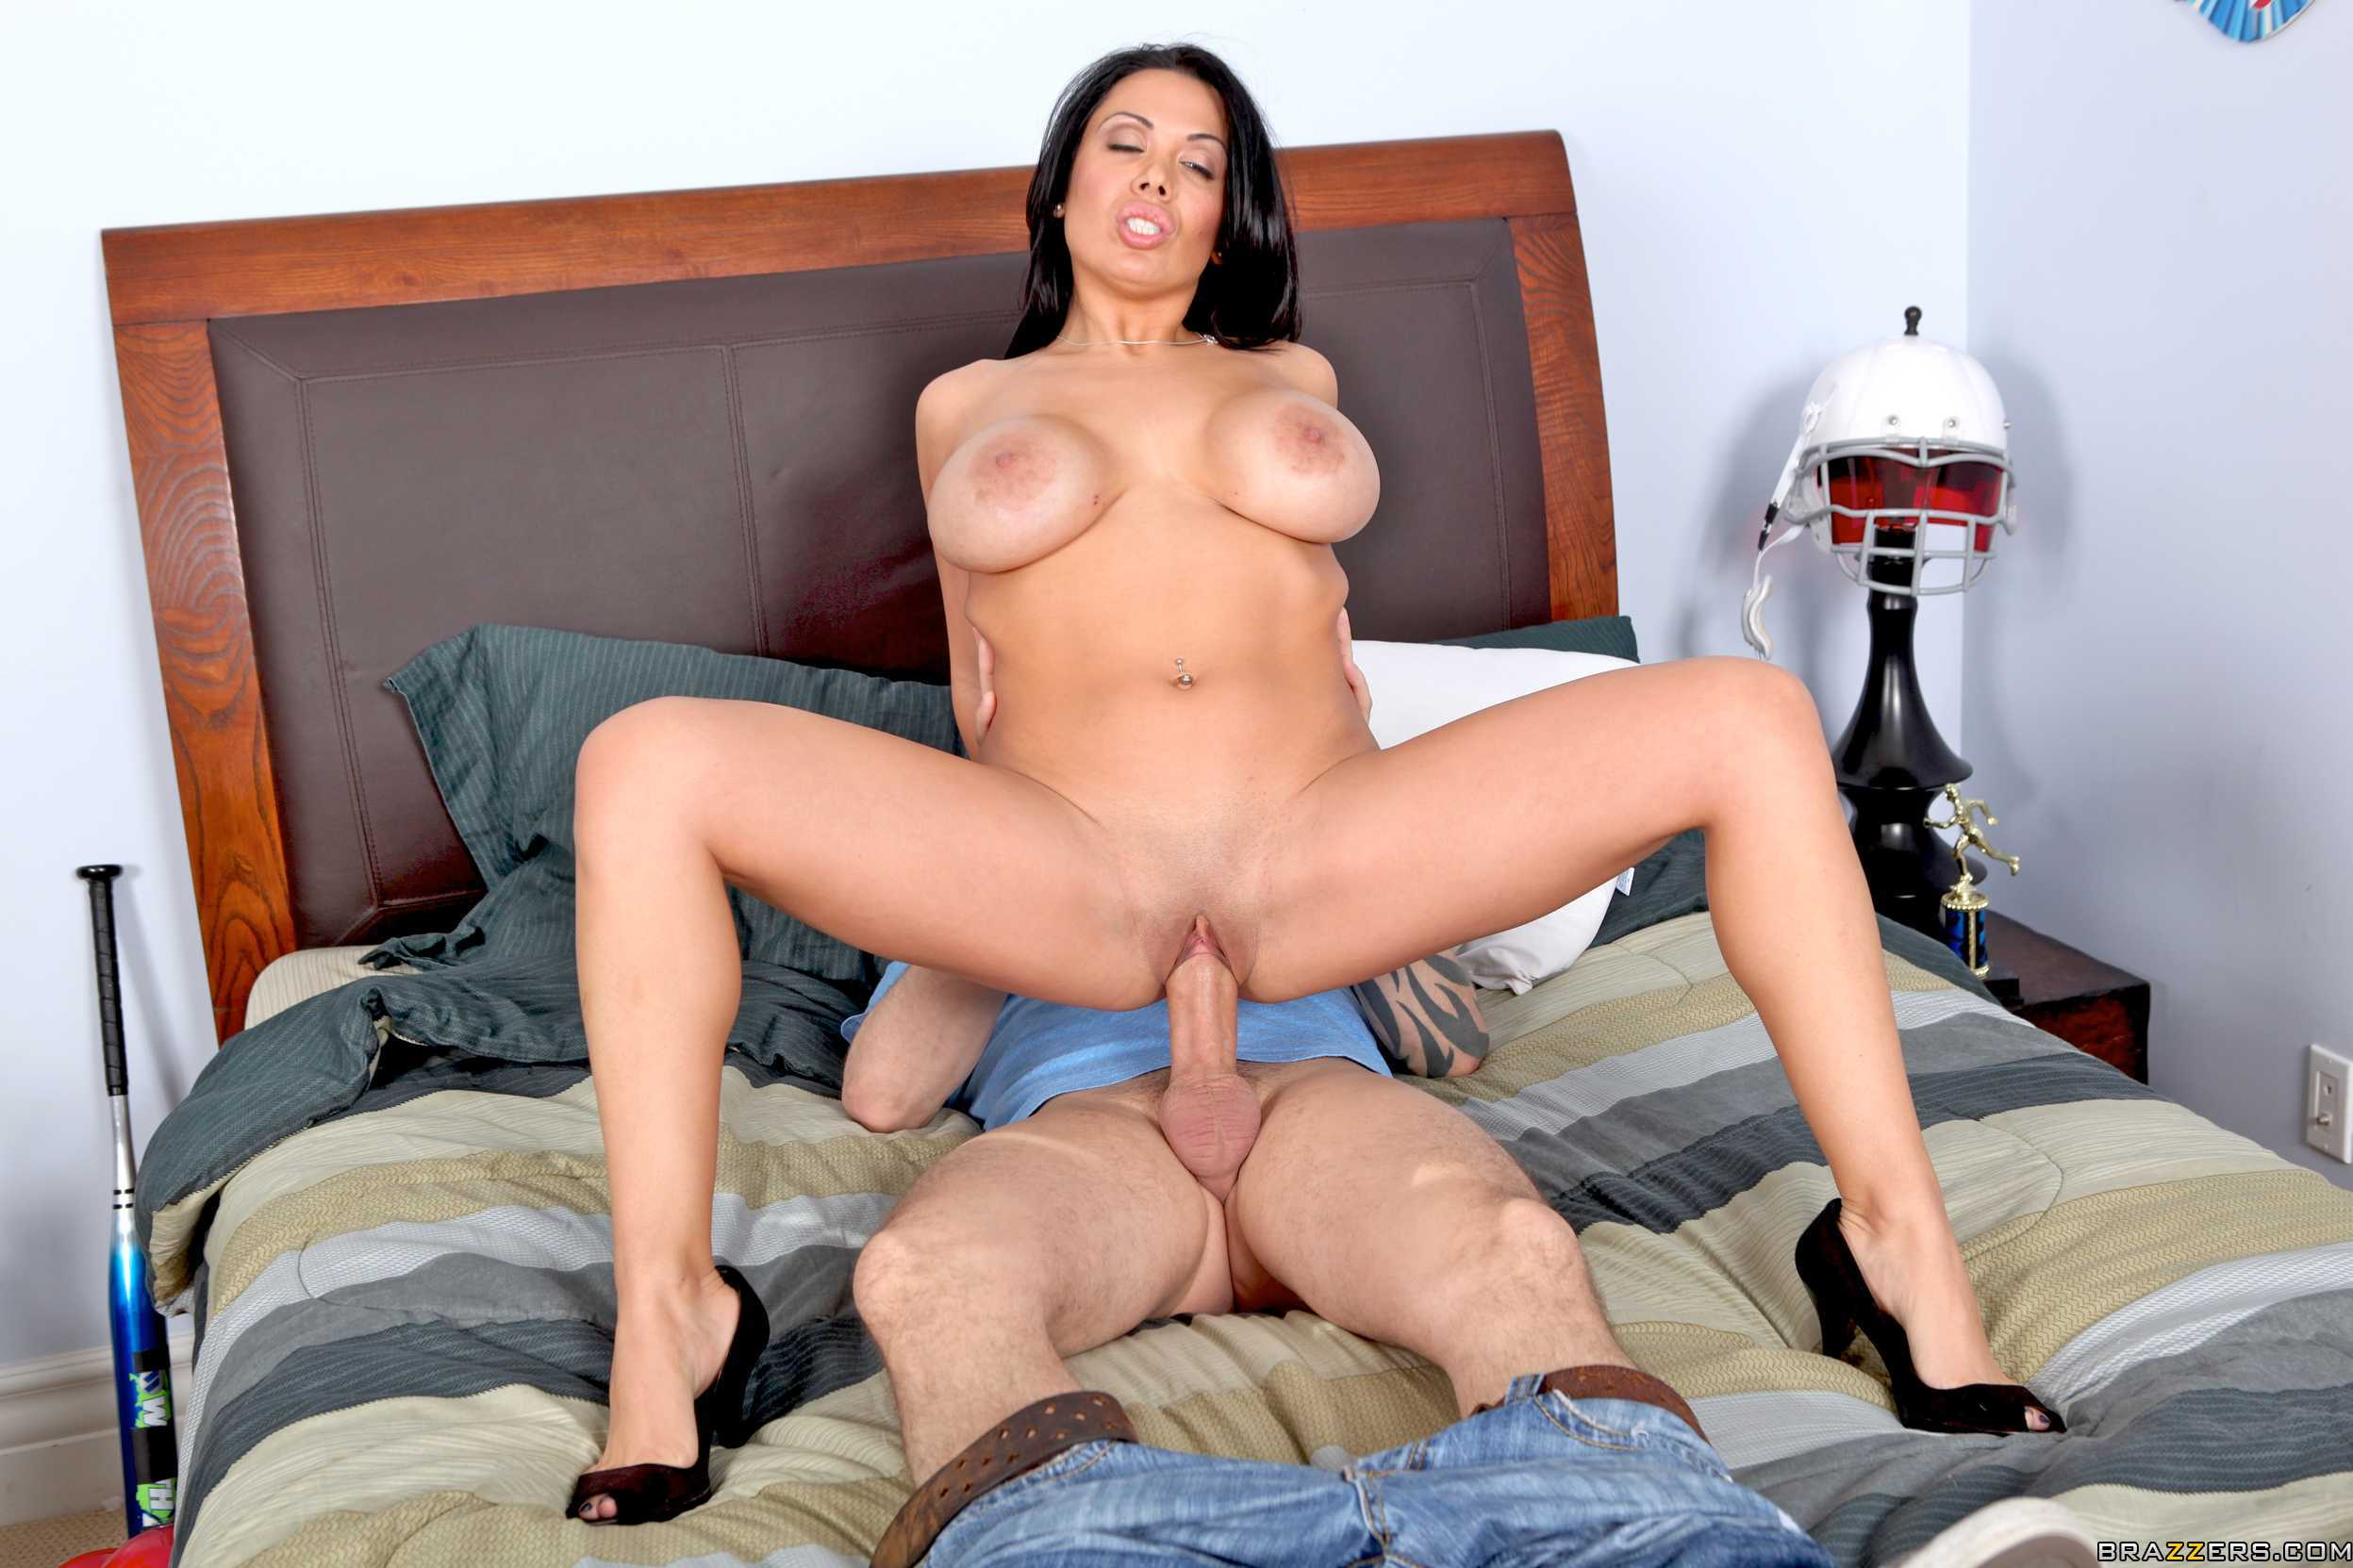 Awesome brunette is seduced by big white 5